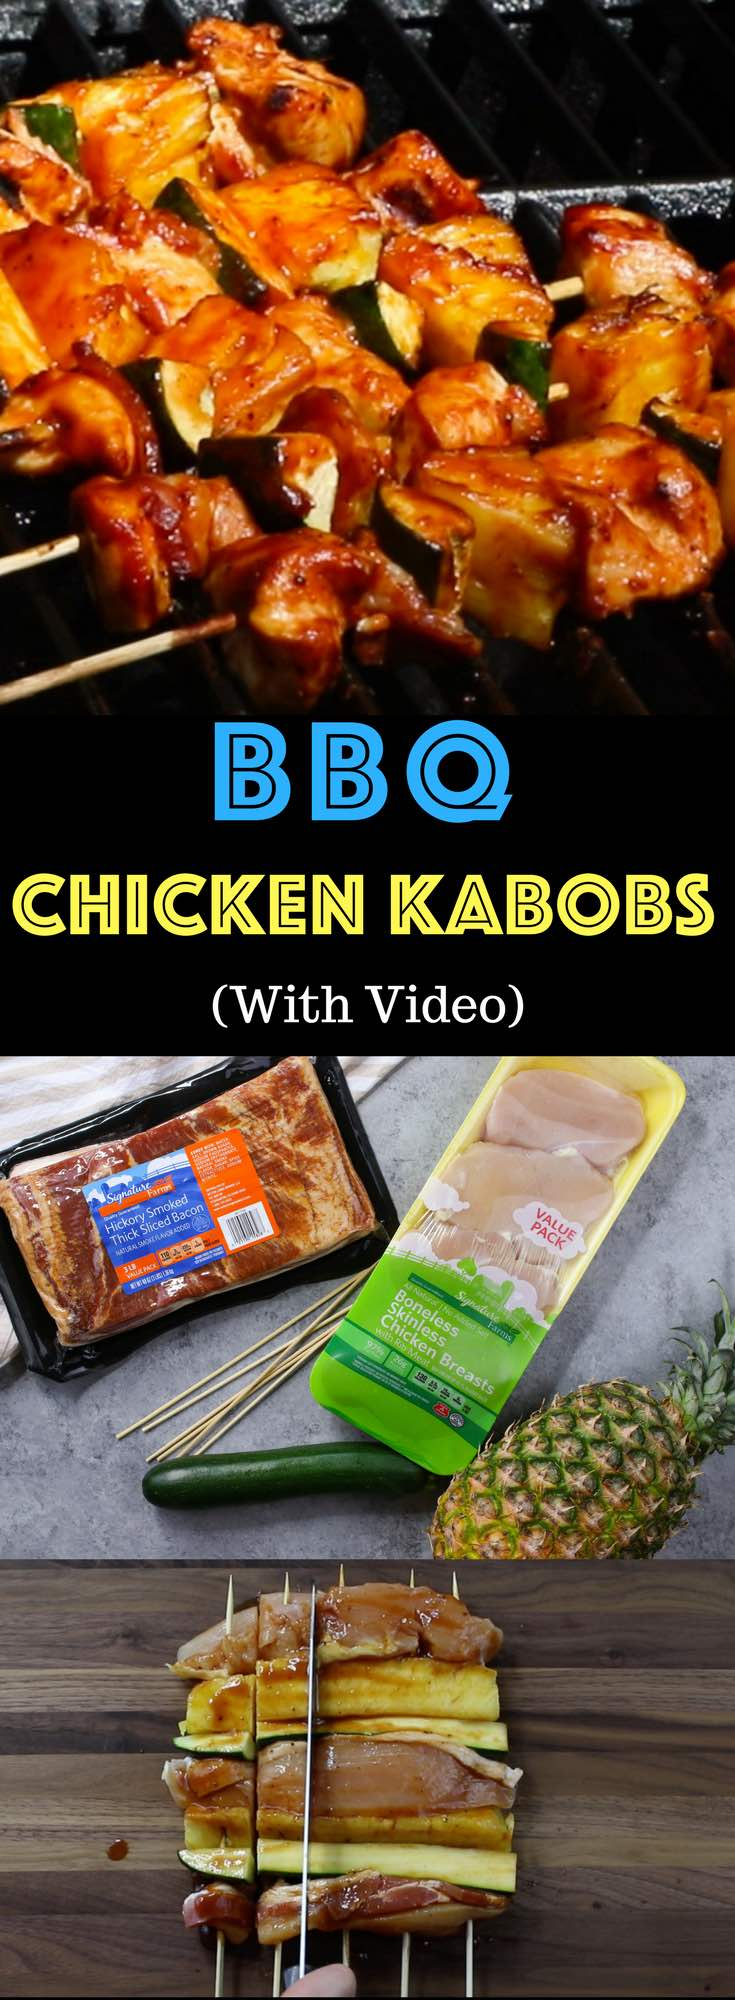 Barbecue Chicken Kabobs – a juicy and flavorful grilling recipe that's easy to make in 20 minutes using a few simple ingredients: Signature Farms Chicken Breasts, Signature Farms Hickey Smoked Thick Sliced Bacon, pineapple, zucchini and barbecue sauce. Perfect for parties. Video recipe. AD #MySignatureSummer